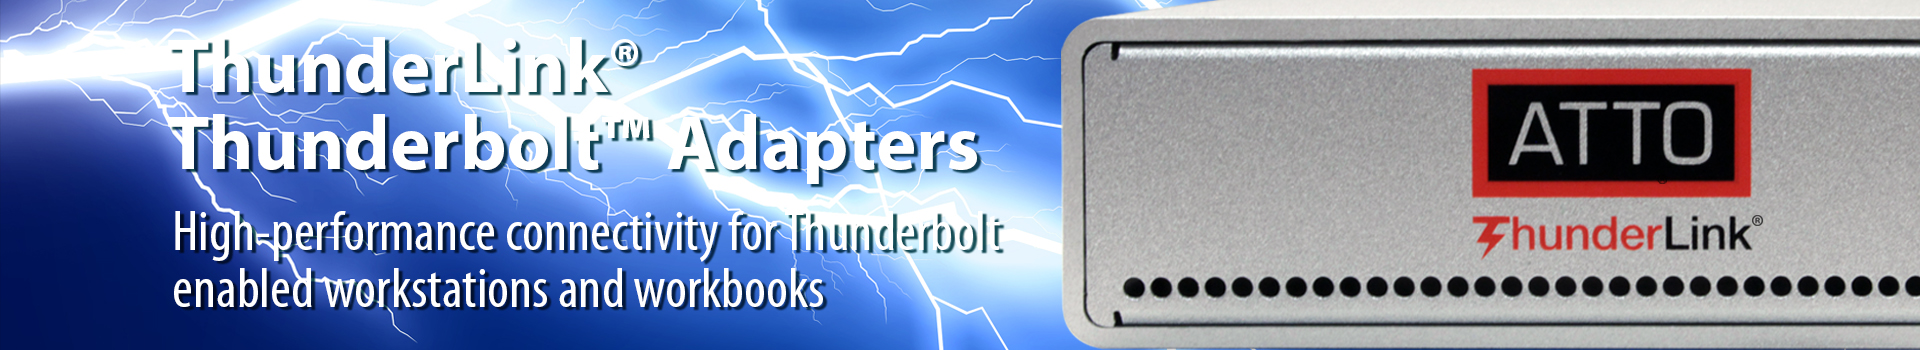 High-performance connectivity for Thunderbold-enabled workstations and workbooks